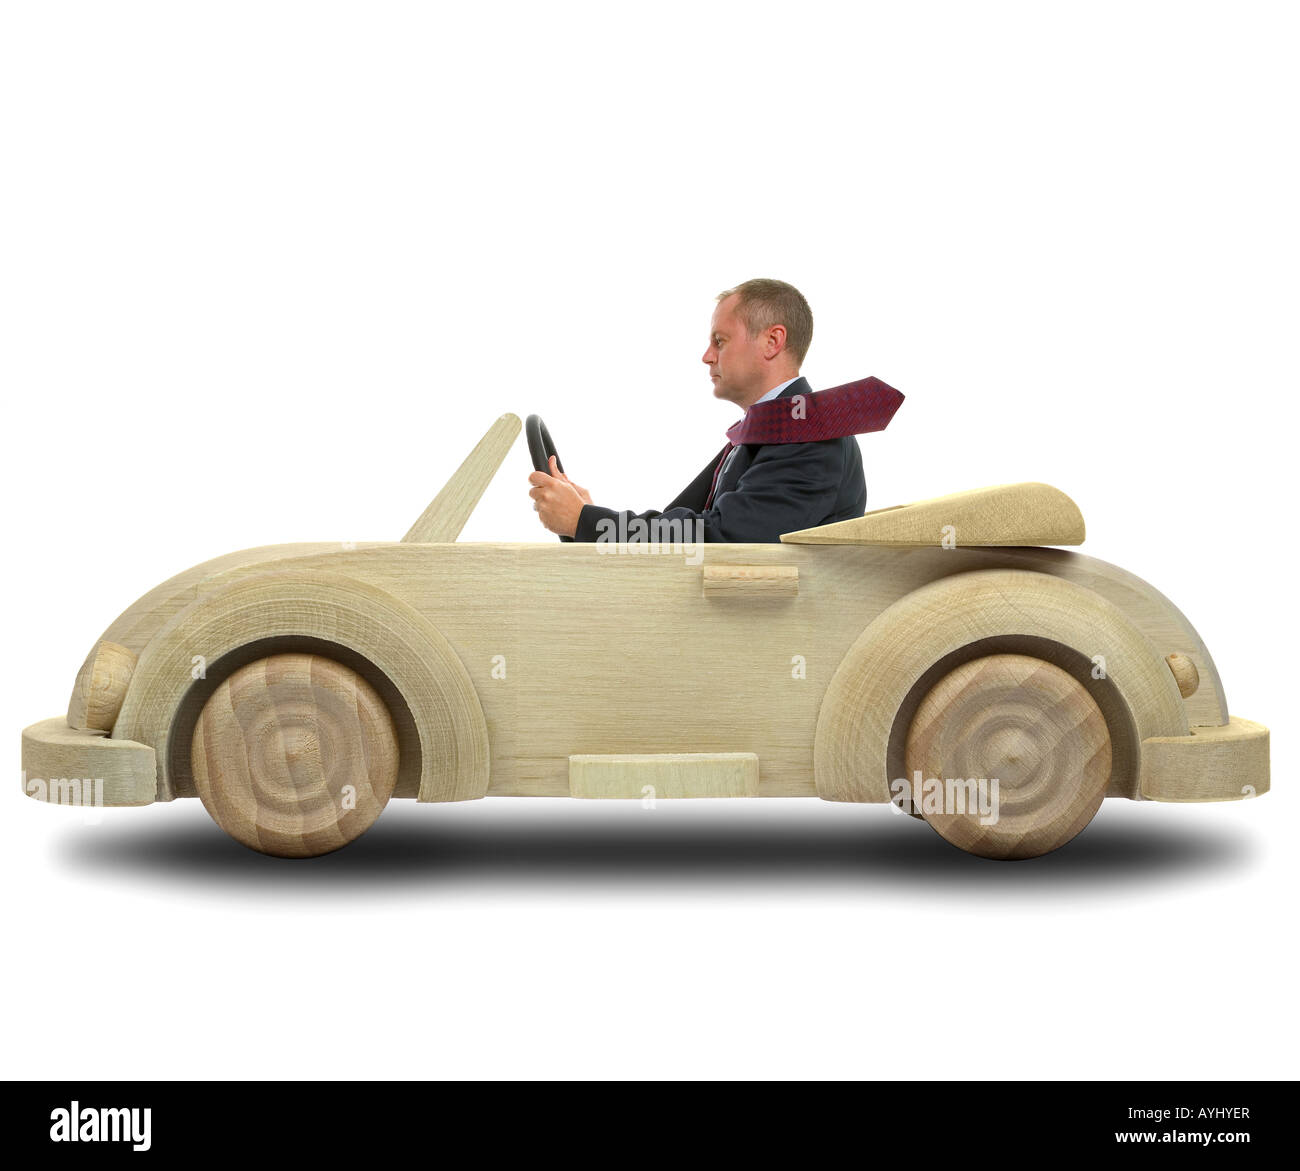 Concept image of a businessman driving to work in his environmentally friendly wooden car - Stock Image